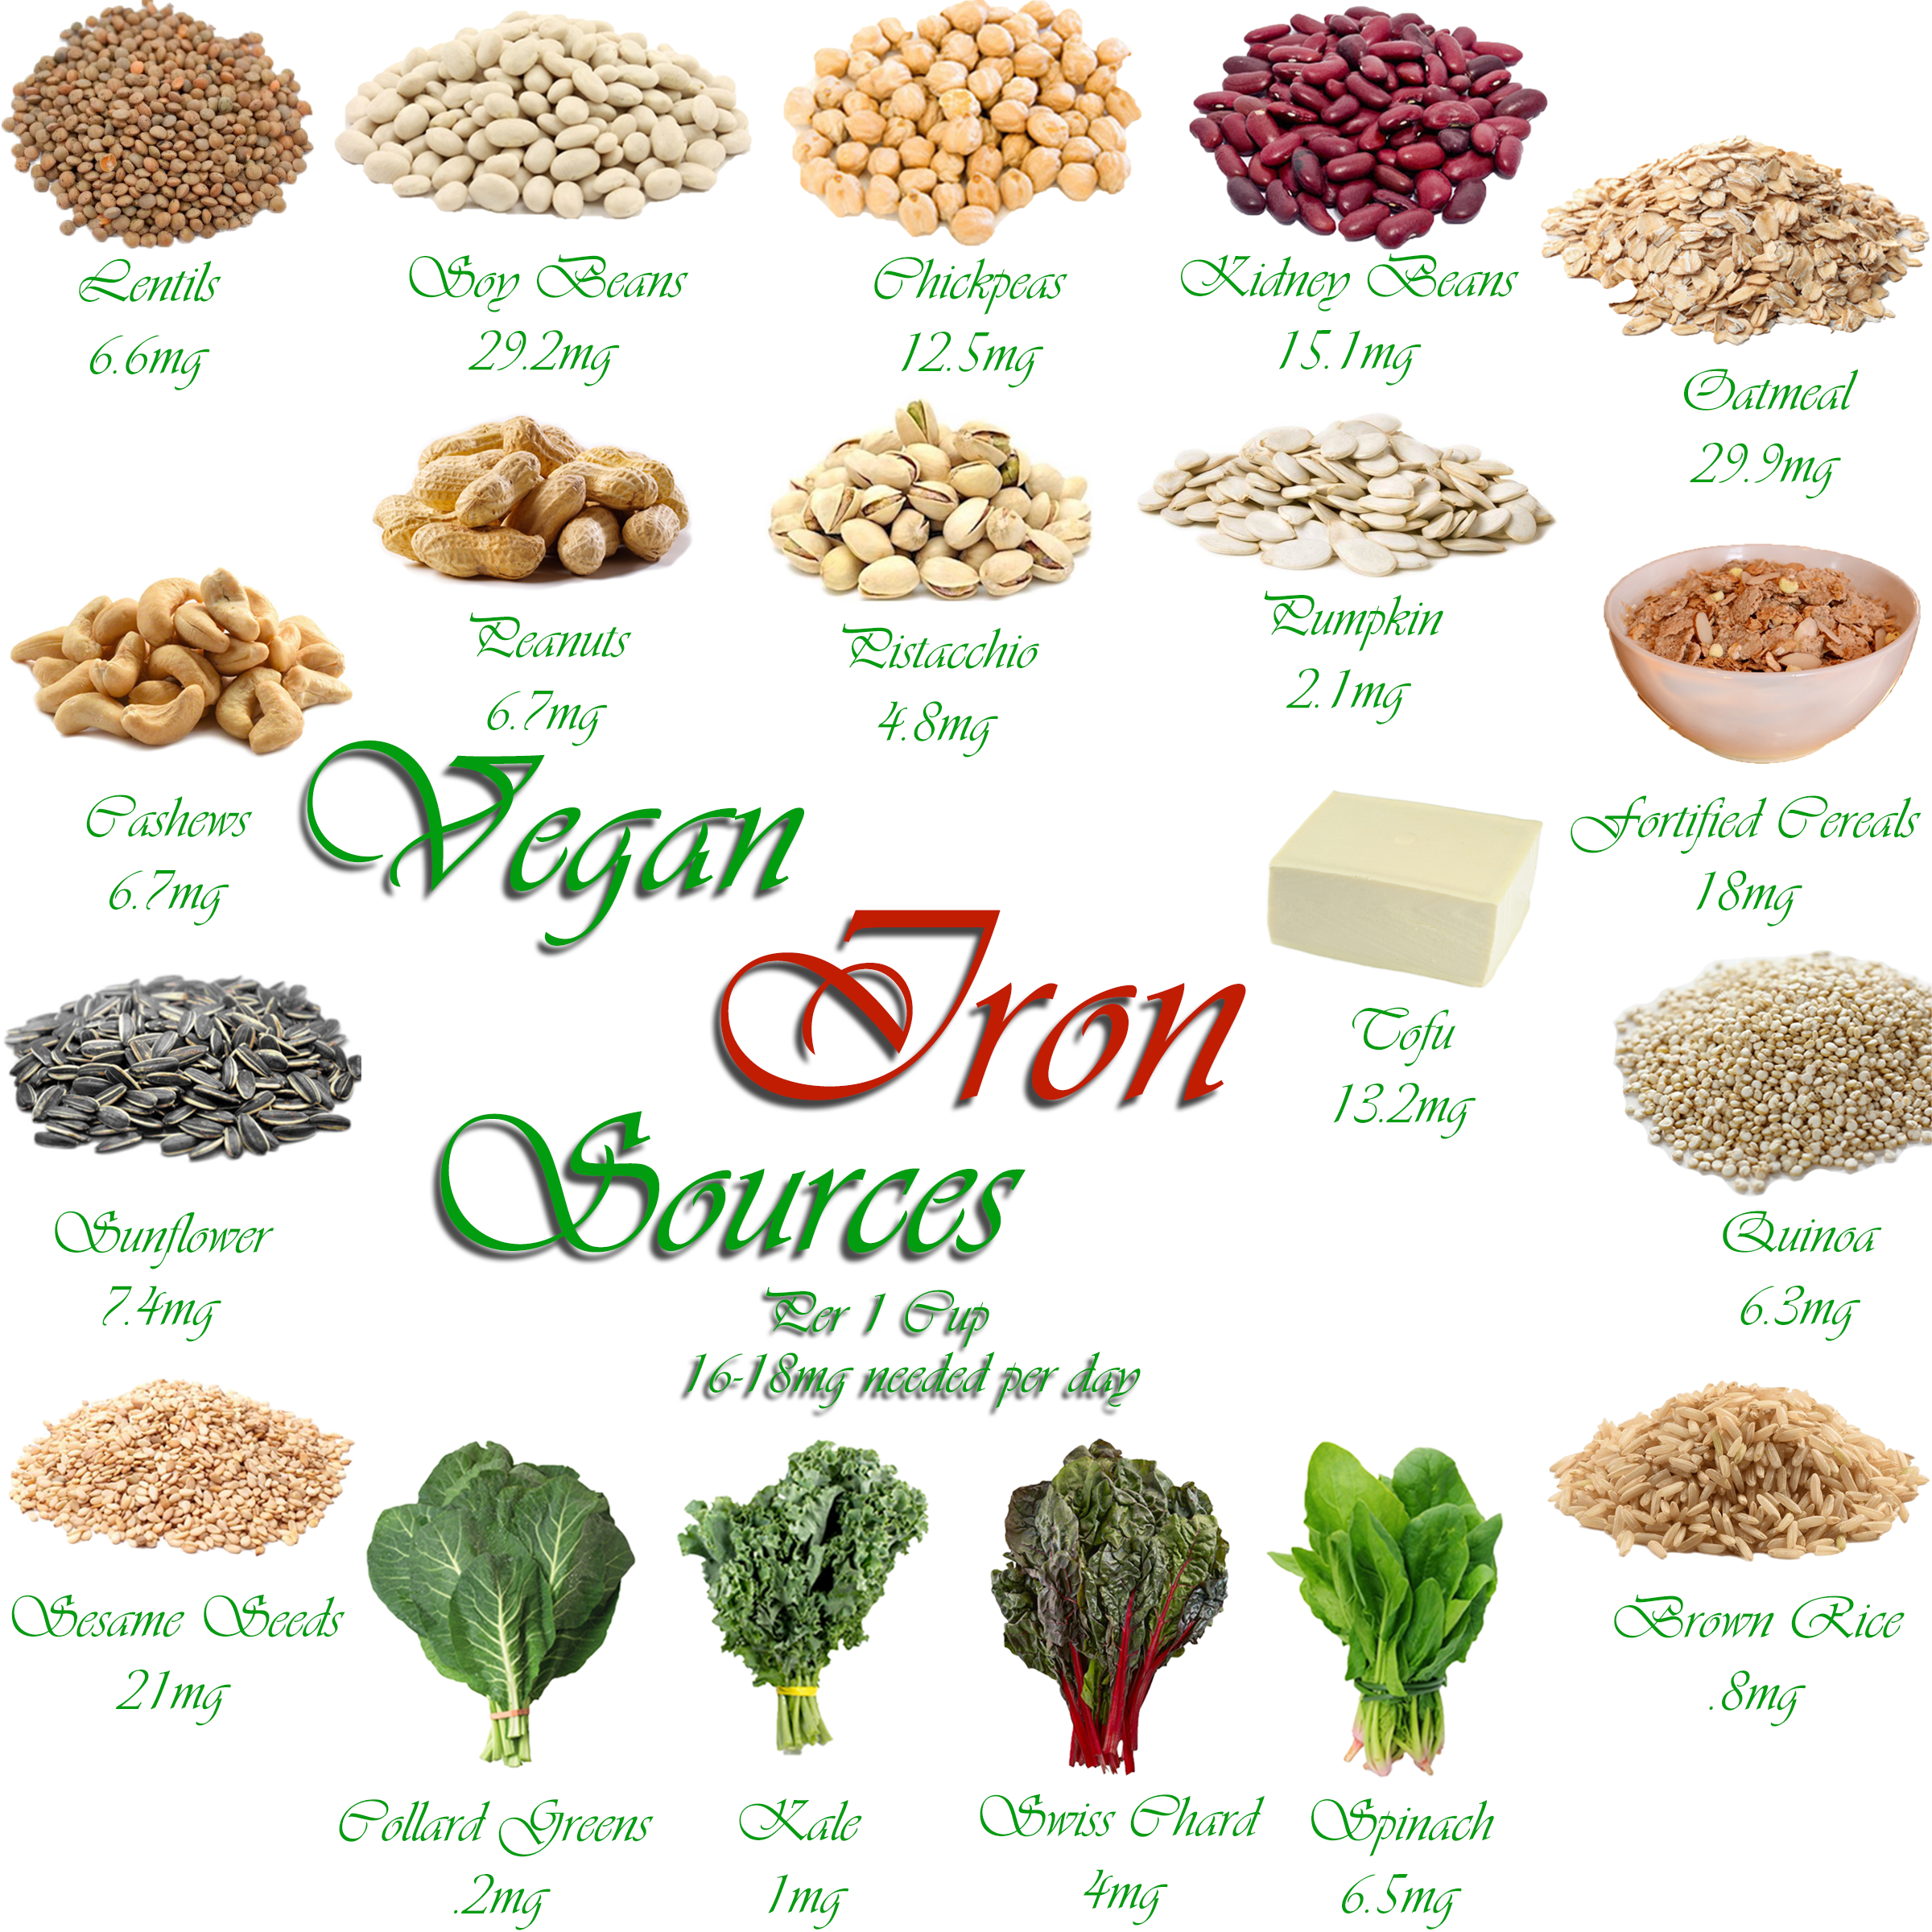 AterImber.com - The Veg Life - Vegan Nutrient Collage Series - Where Do Vegans Get Their Iron?